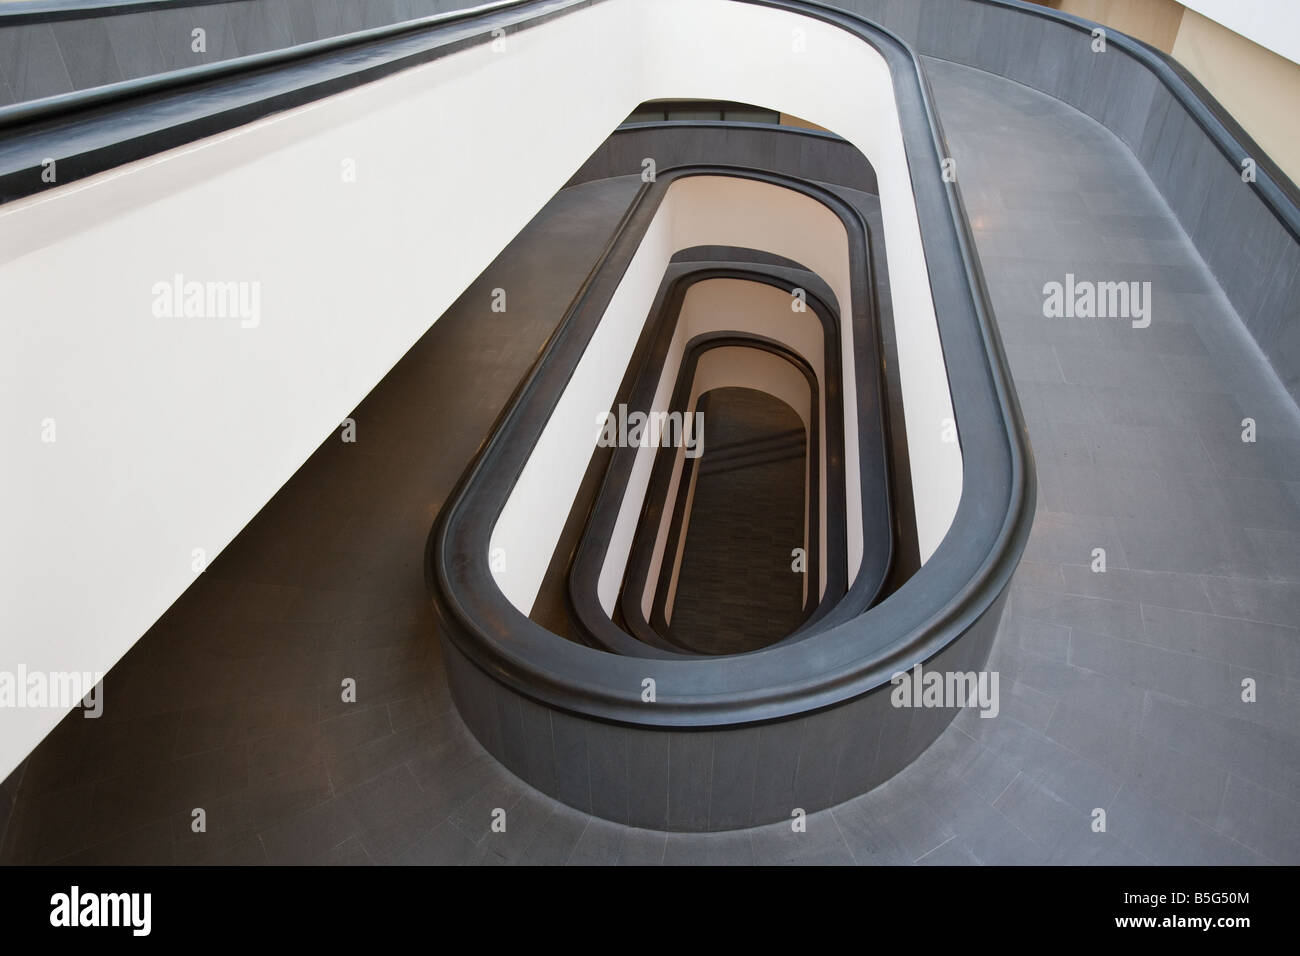 Spiral Ramp Vatican Museum Rome Italy - Stock Image